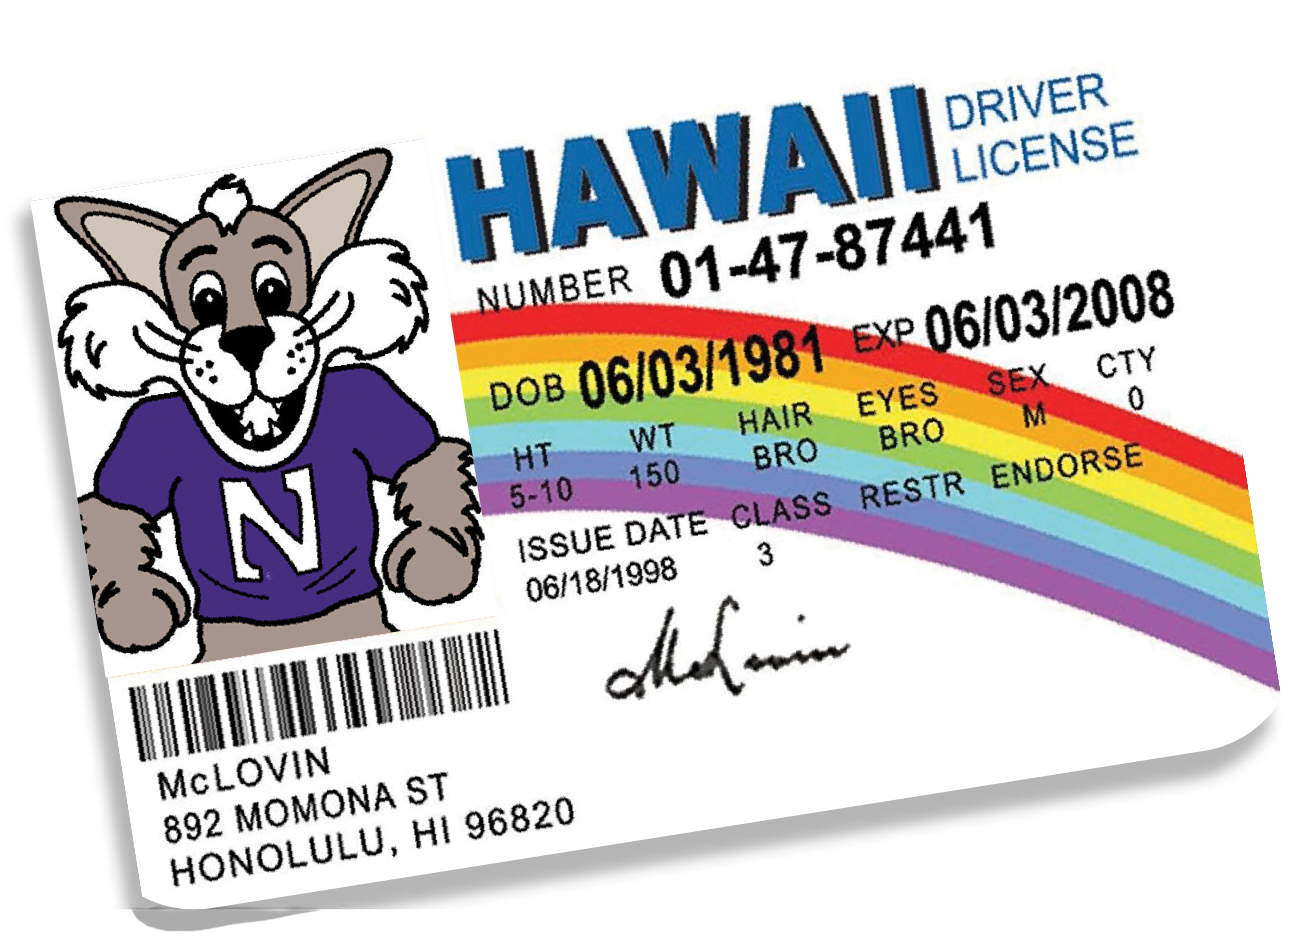 The McLovin' Hawaii driver's license from the movie 'Superbad' with Willy the Wildcat's photo on it